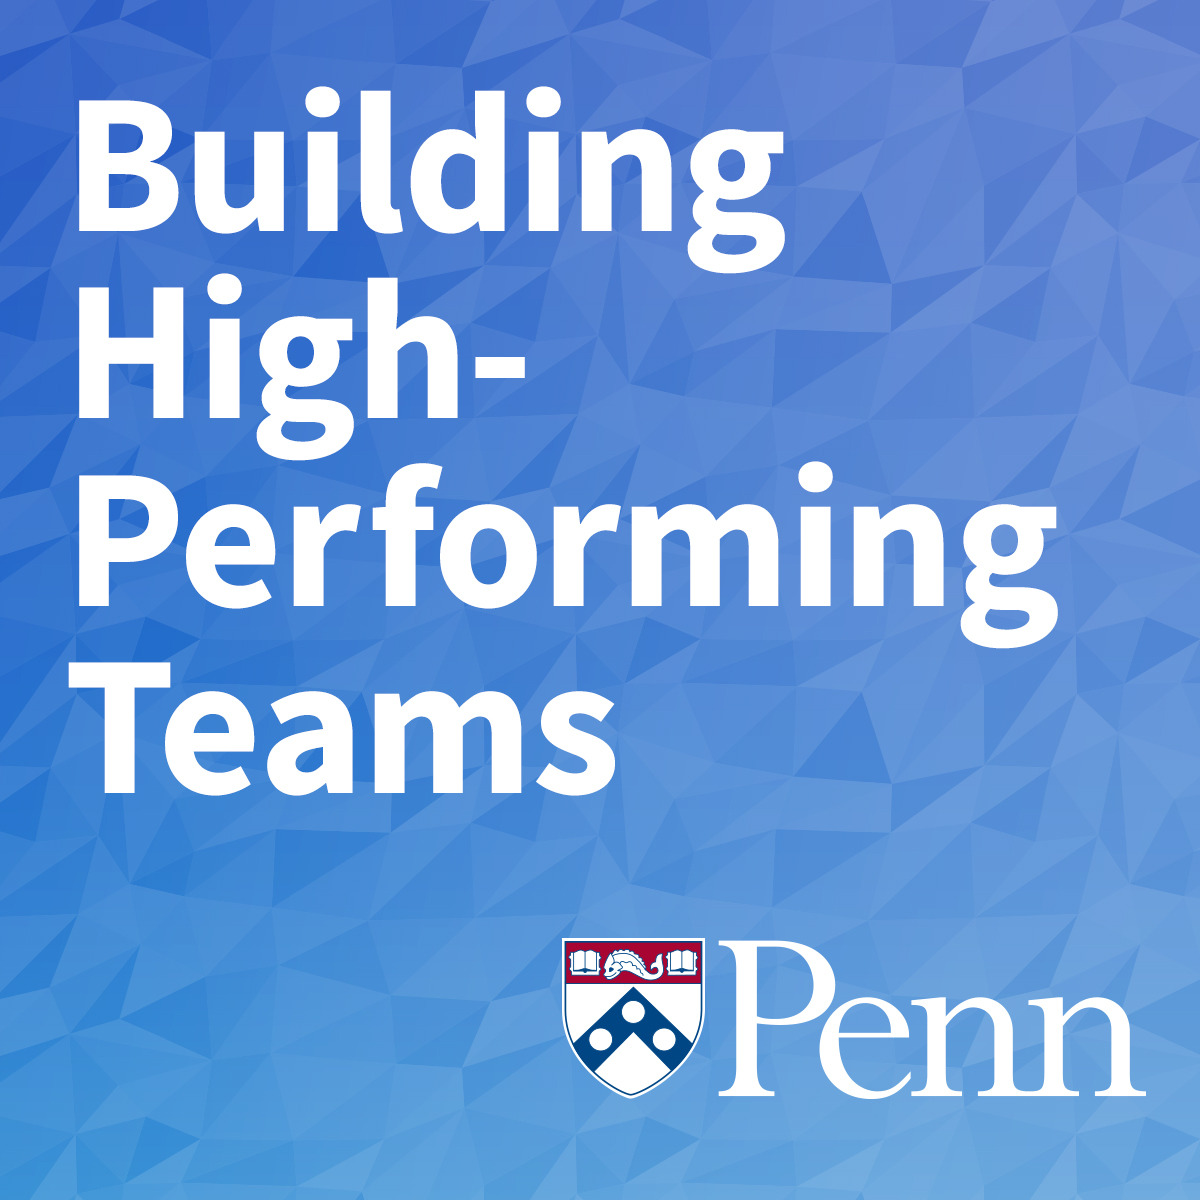 Building High-Performing Teams course image